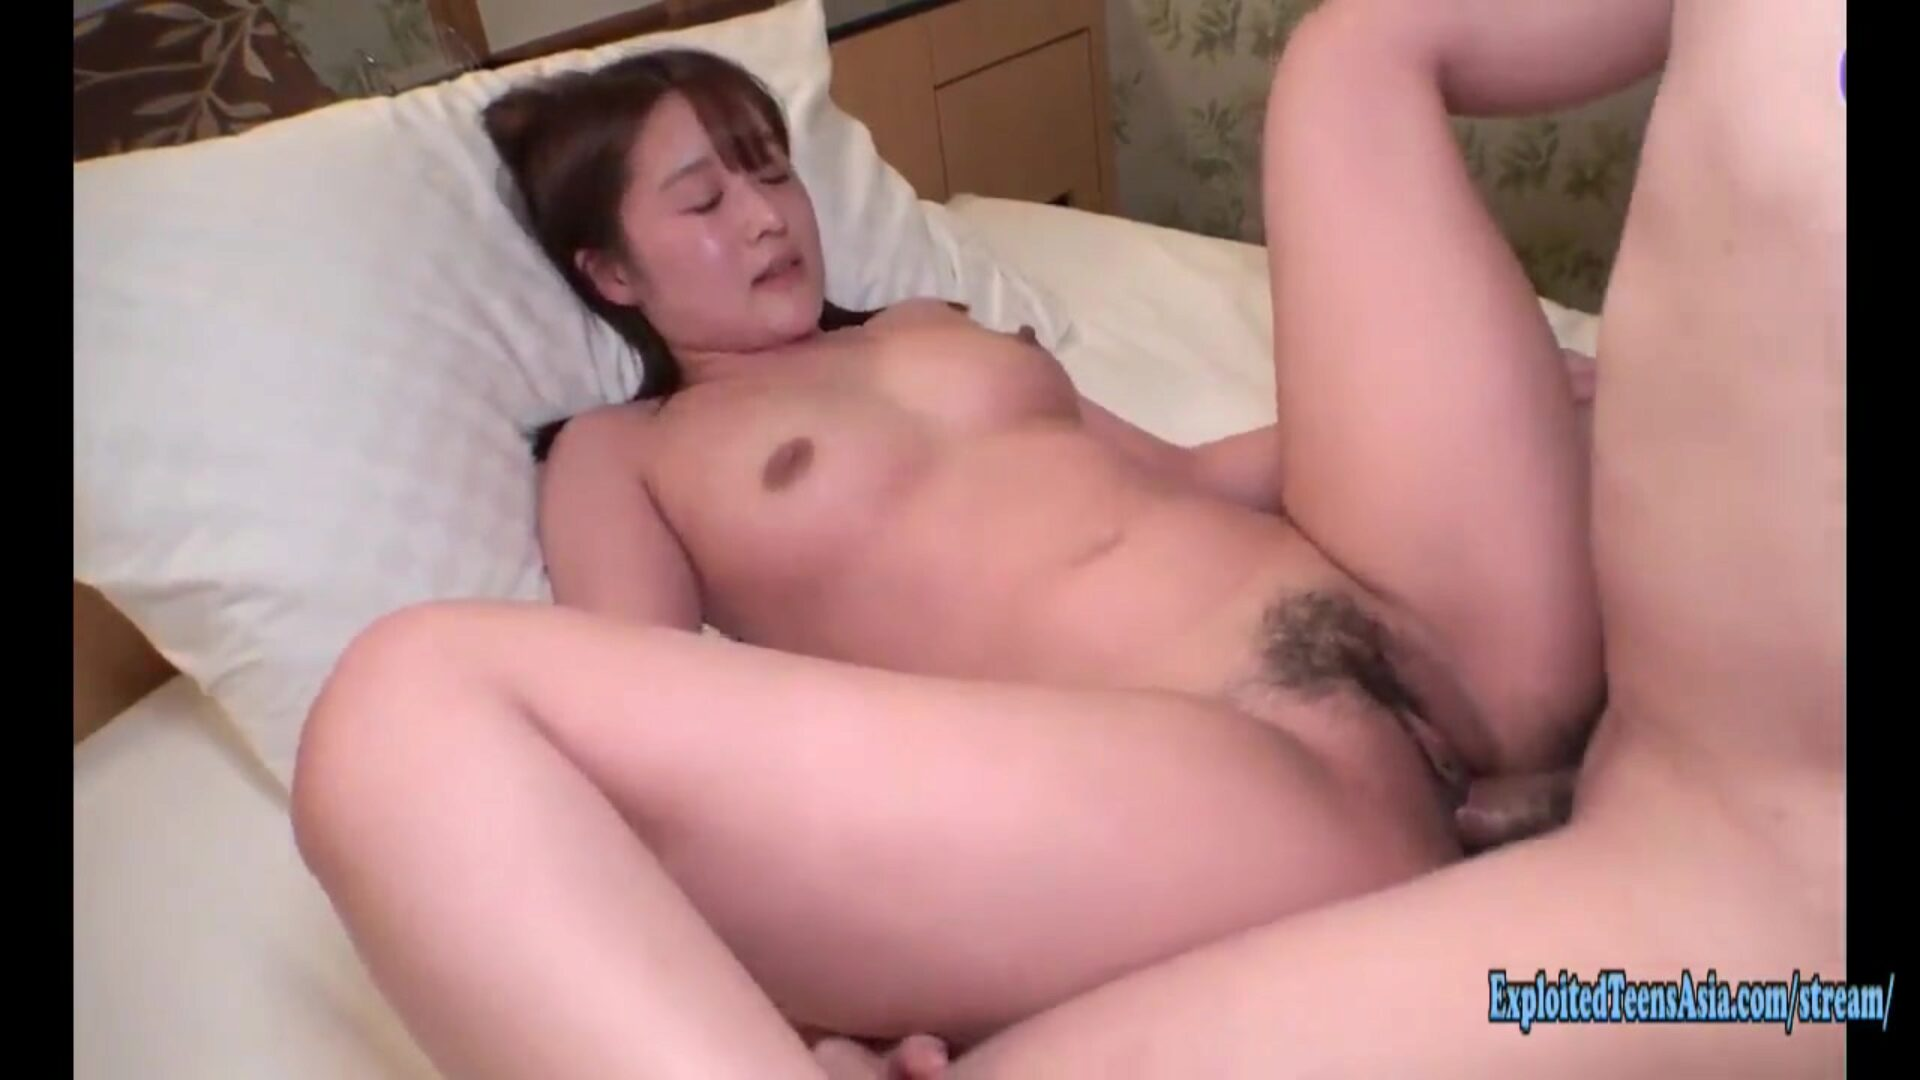 Jav Teen Suzu Fucks Uncensored Chubby Cute Girl Nice Pink Jav Teen Suzu Fucks Uncensored fat sweetheart acquires piston act awesome non-professional student Login to members for the utter movie $3.95 trial Join Now. 4500 scenes in members updated every single day Exclusive.